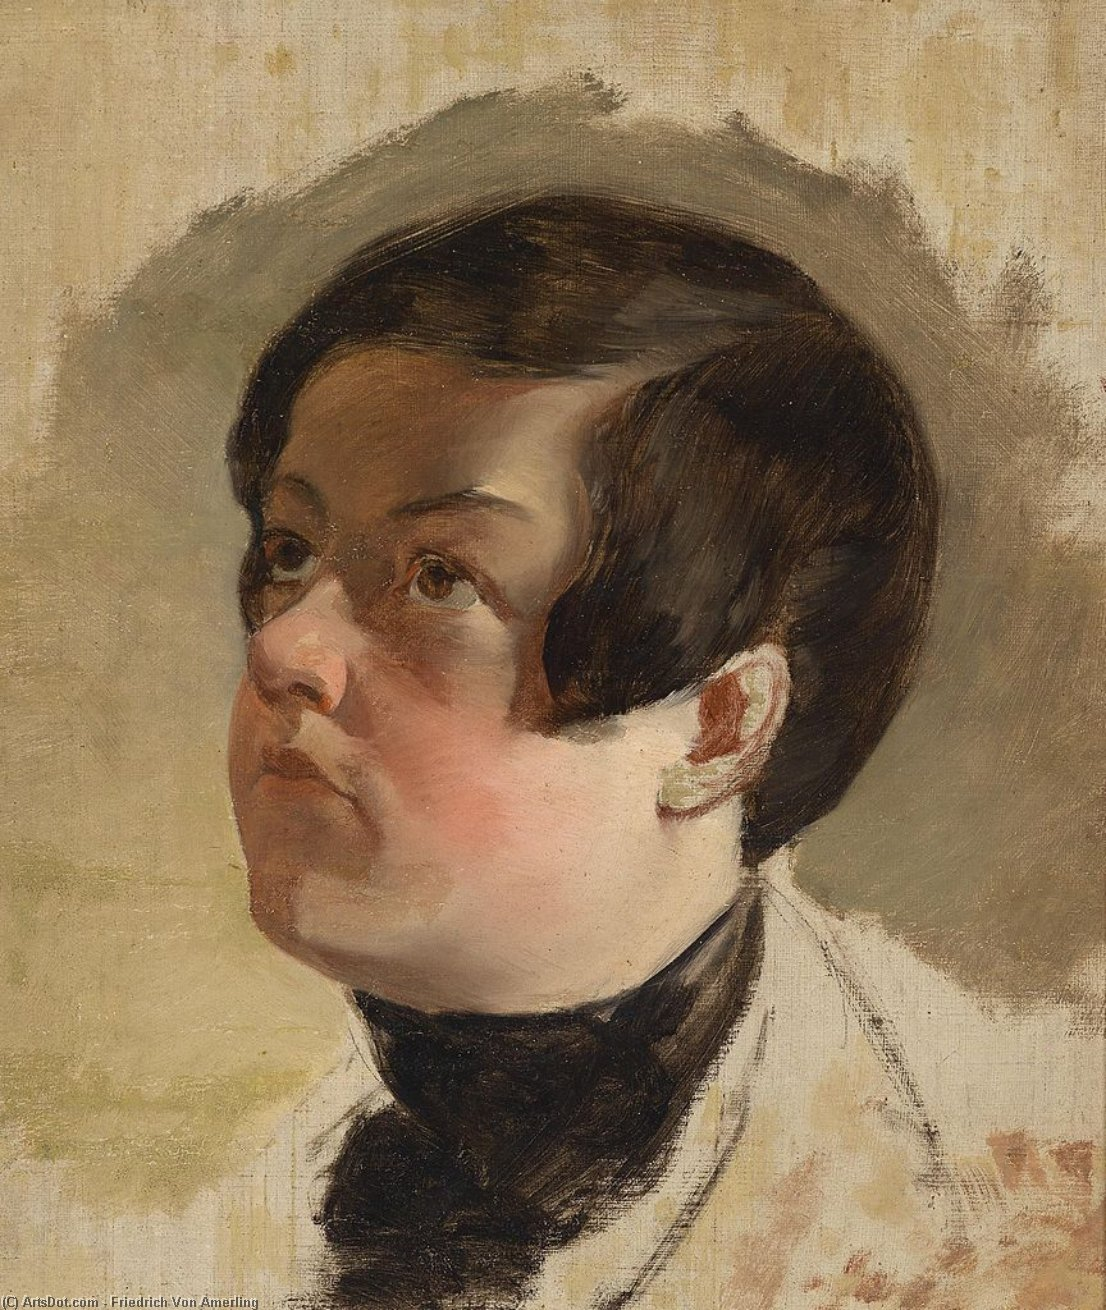 Study of a boy's head by Friedrich Ritter Von Amerling (1803-1887) | ArtsDot.com